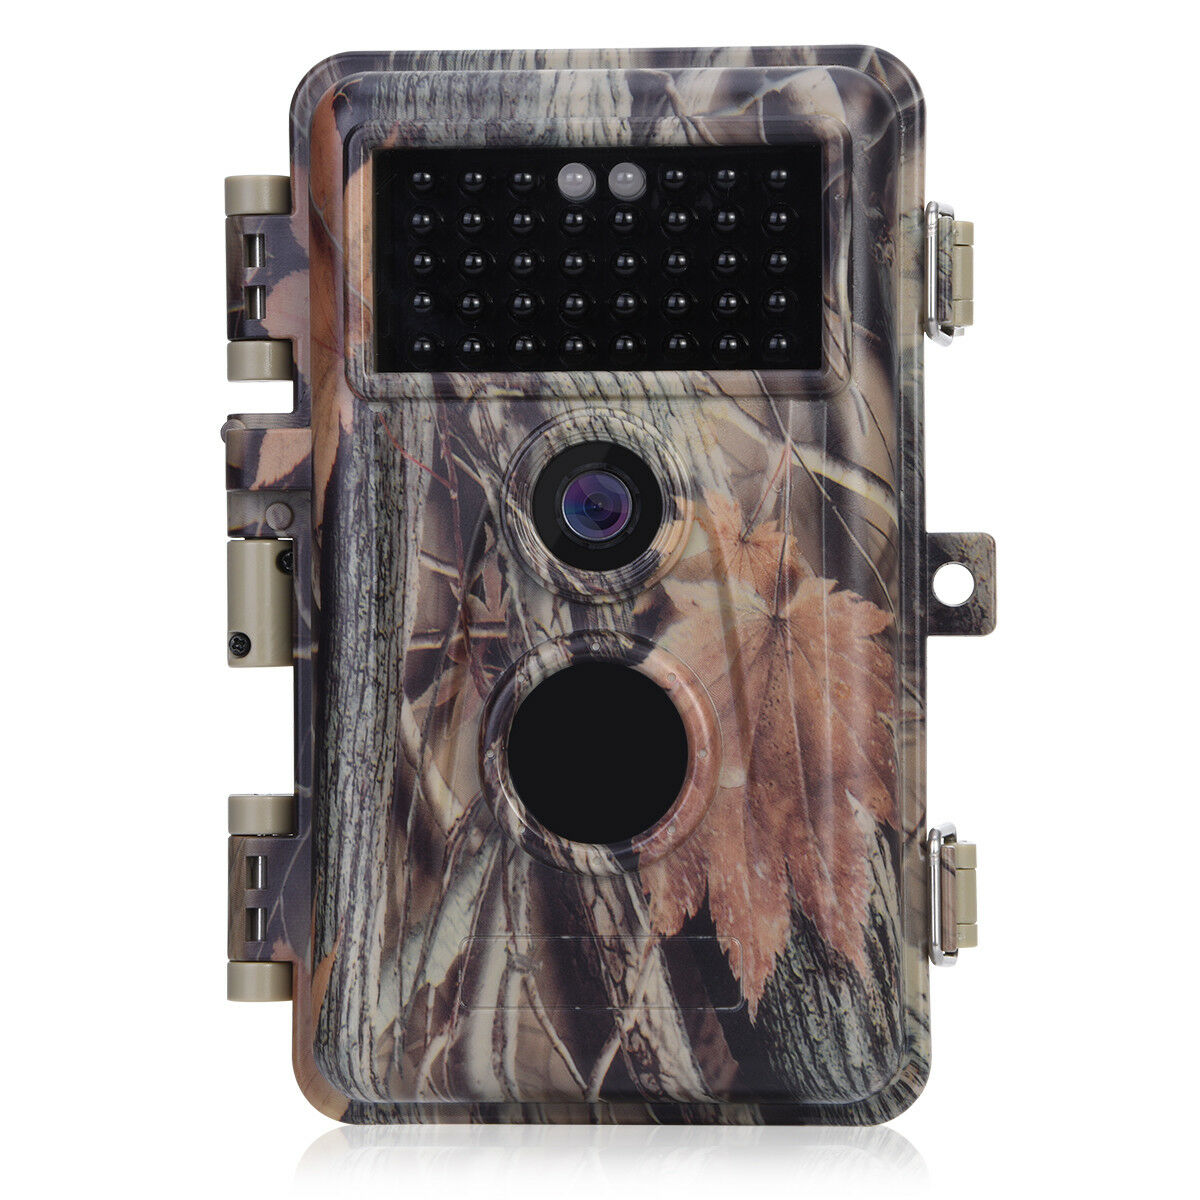 Game &  Trail Hunting Wildlife Camera 16MP 1080P No Glow Night Vision Waterproof  hot sale online